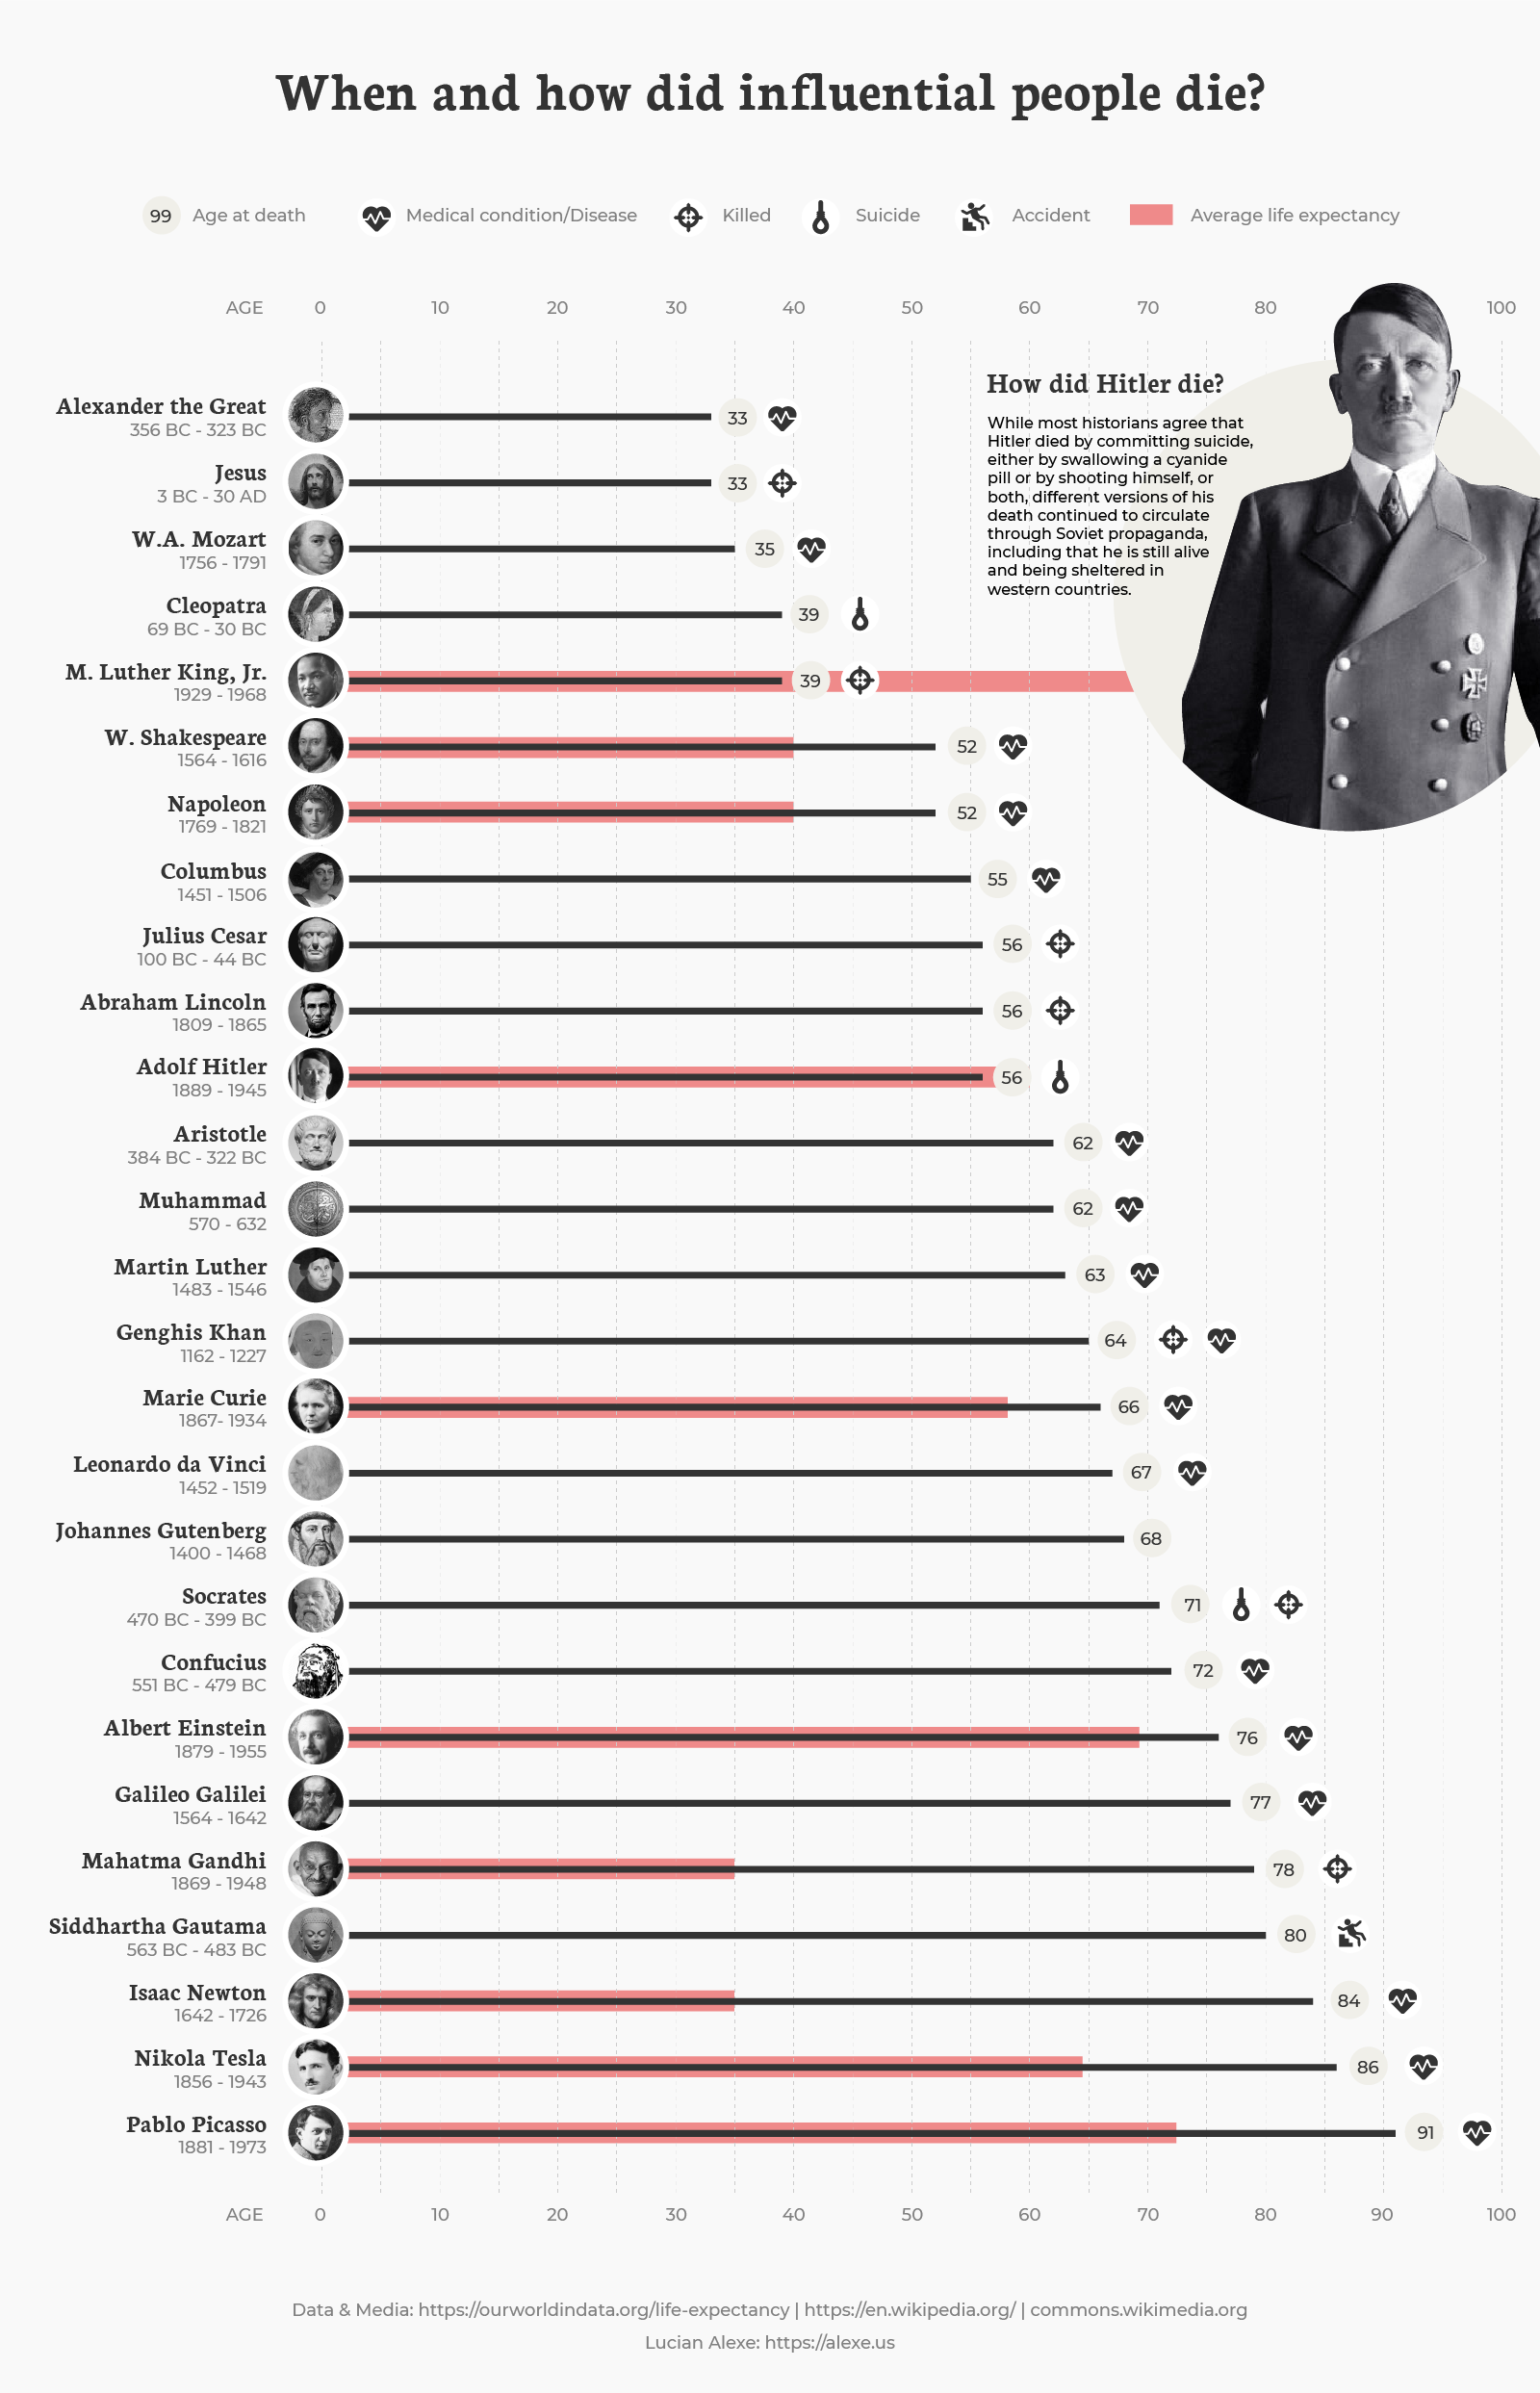 When and how did influential people die #Infographic